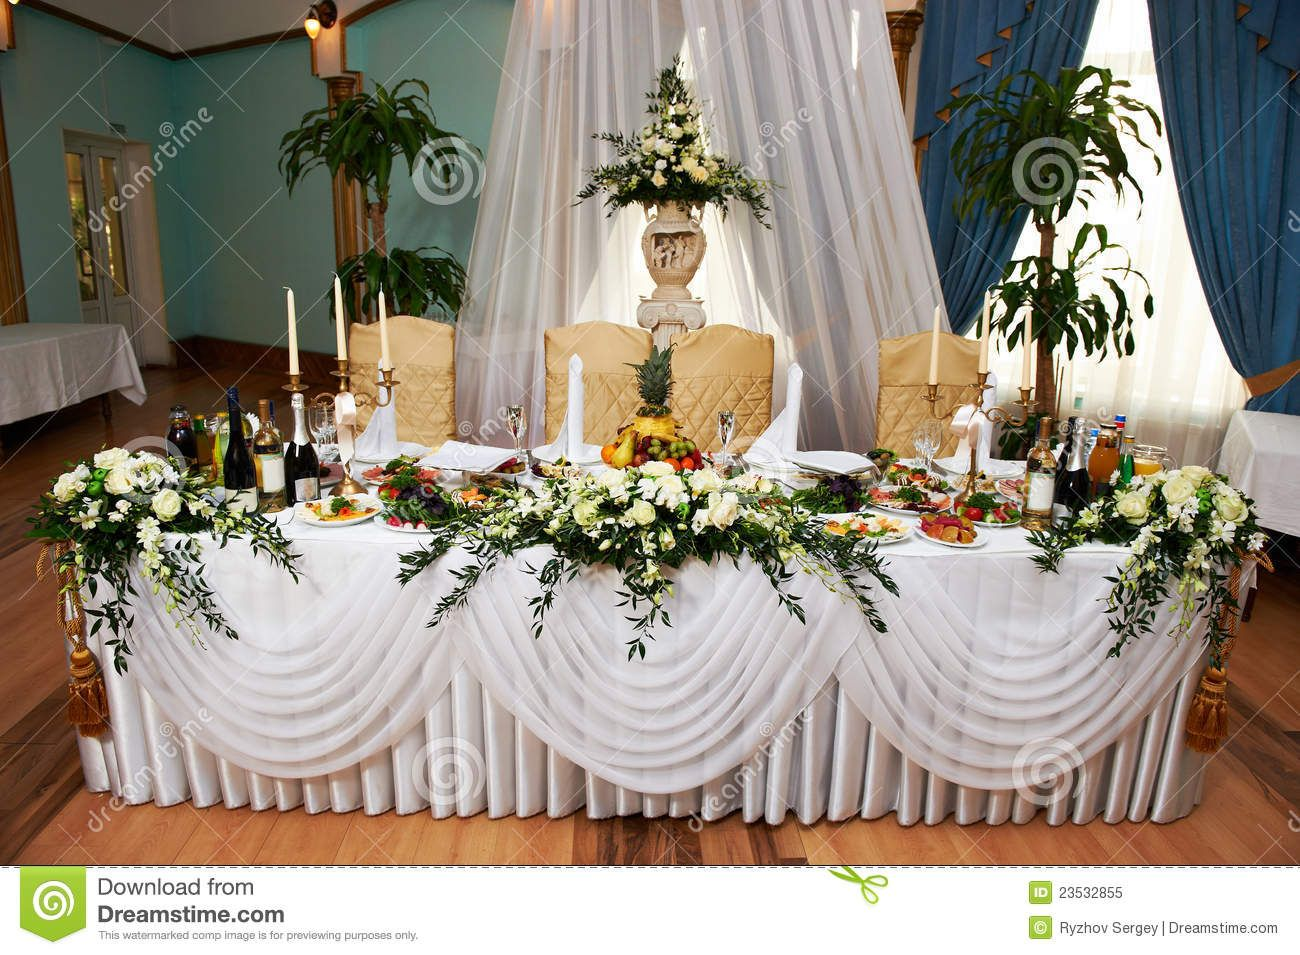 Bride wedding tables google search fashion 4 me for Small table decorations for weddings